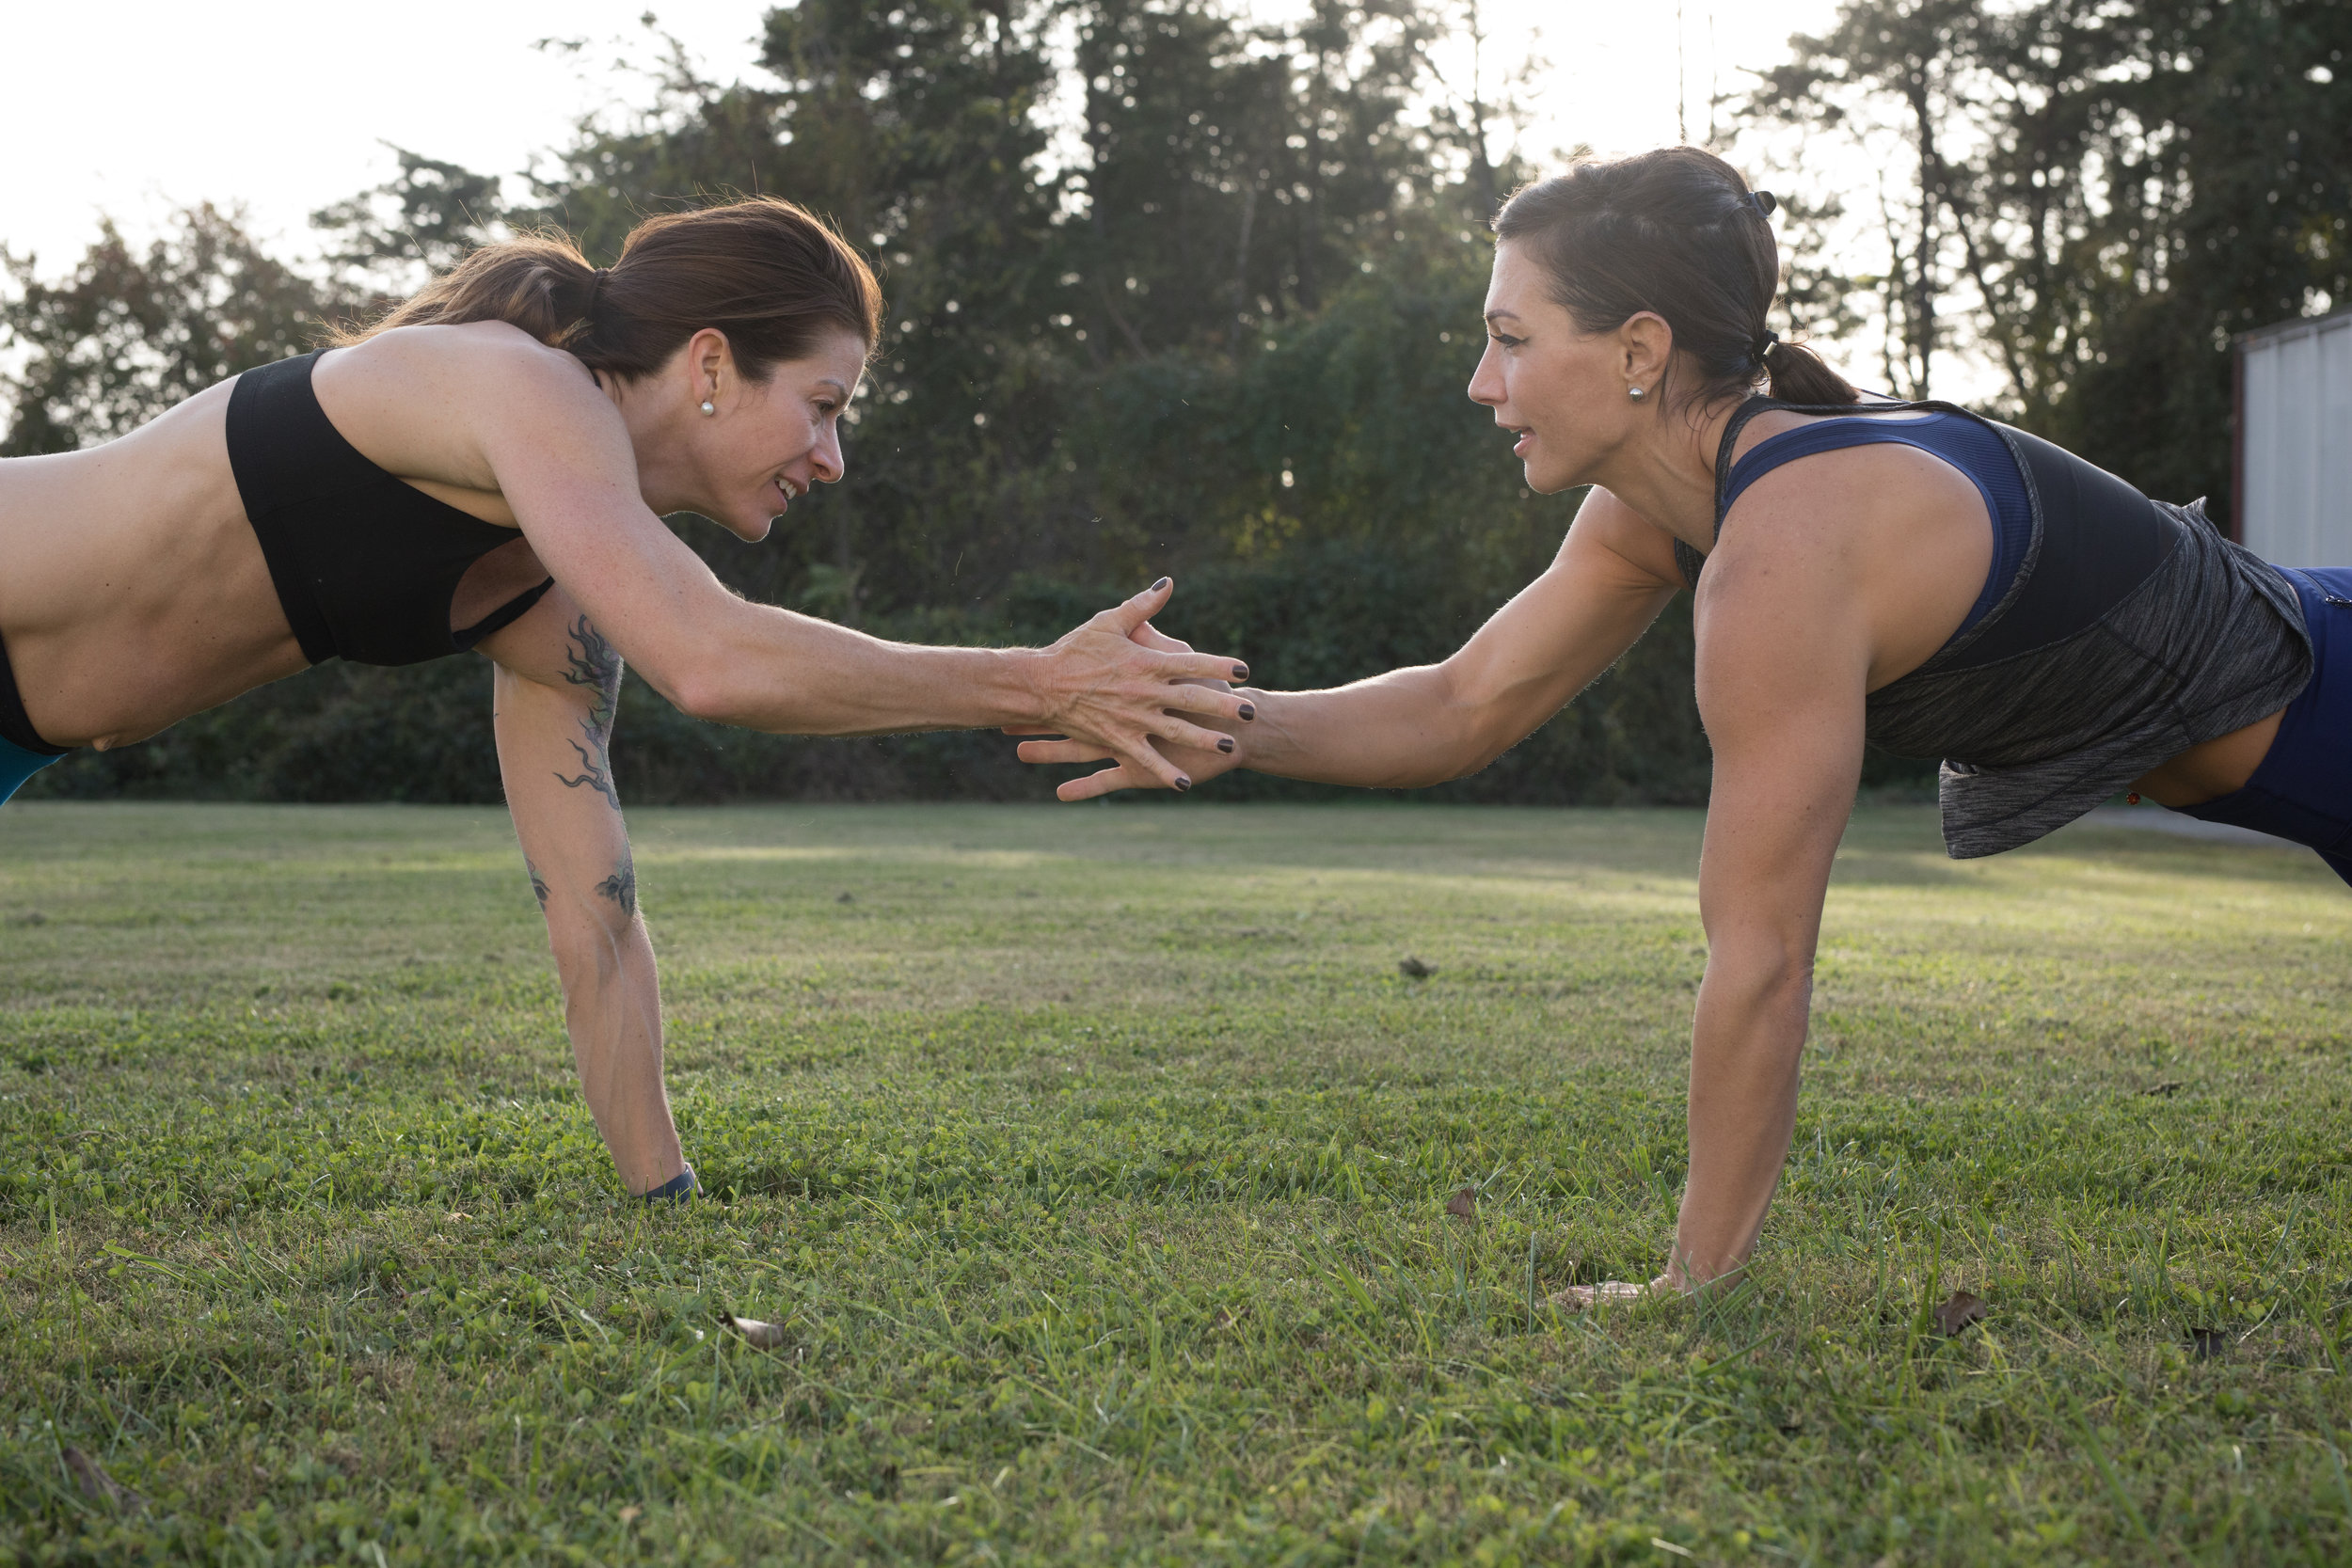 fun outside - friends - community - women of Crossfit - girls who lift - be strong